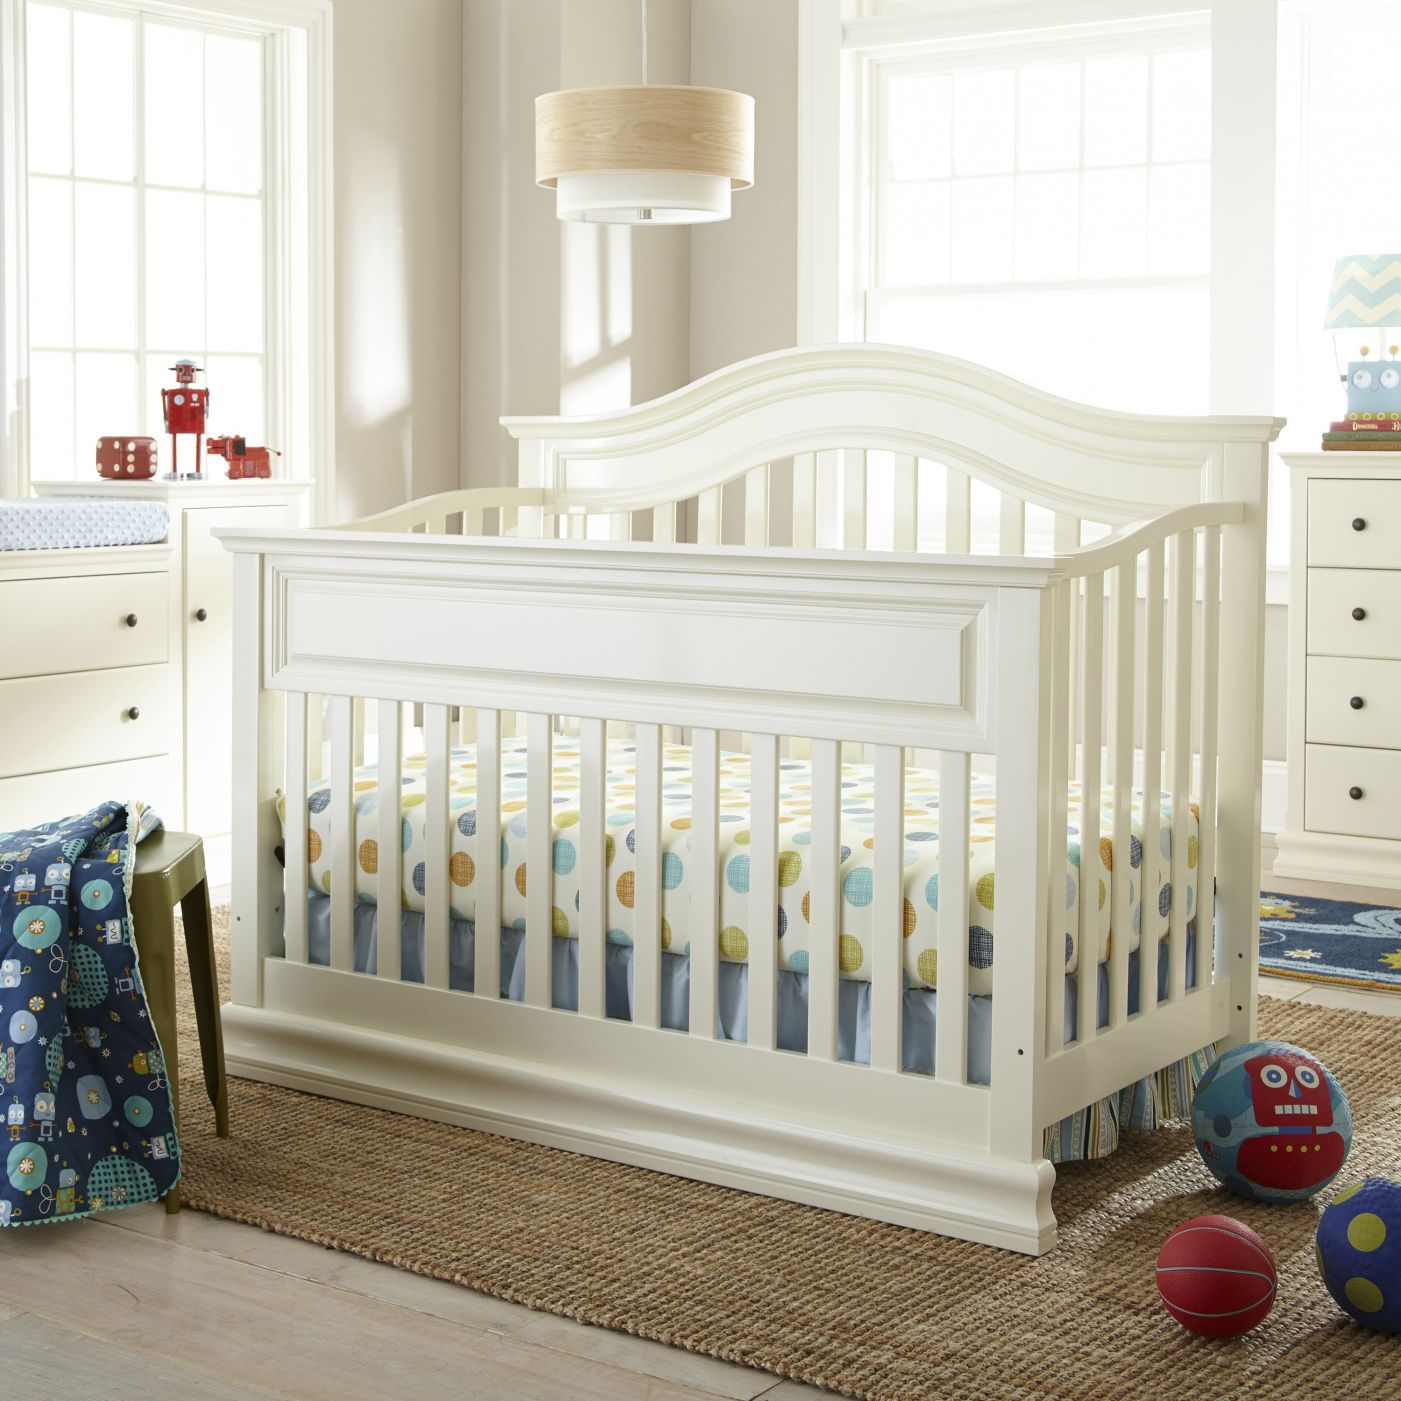 Savanna Tori Baby Furniture   Neutral Interior Paint Colors Check More At  Http://